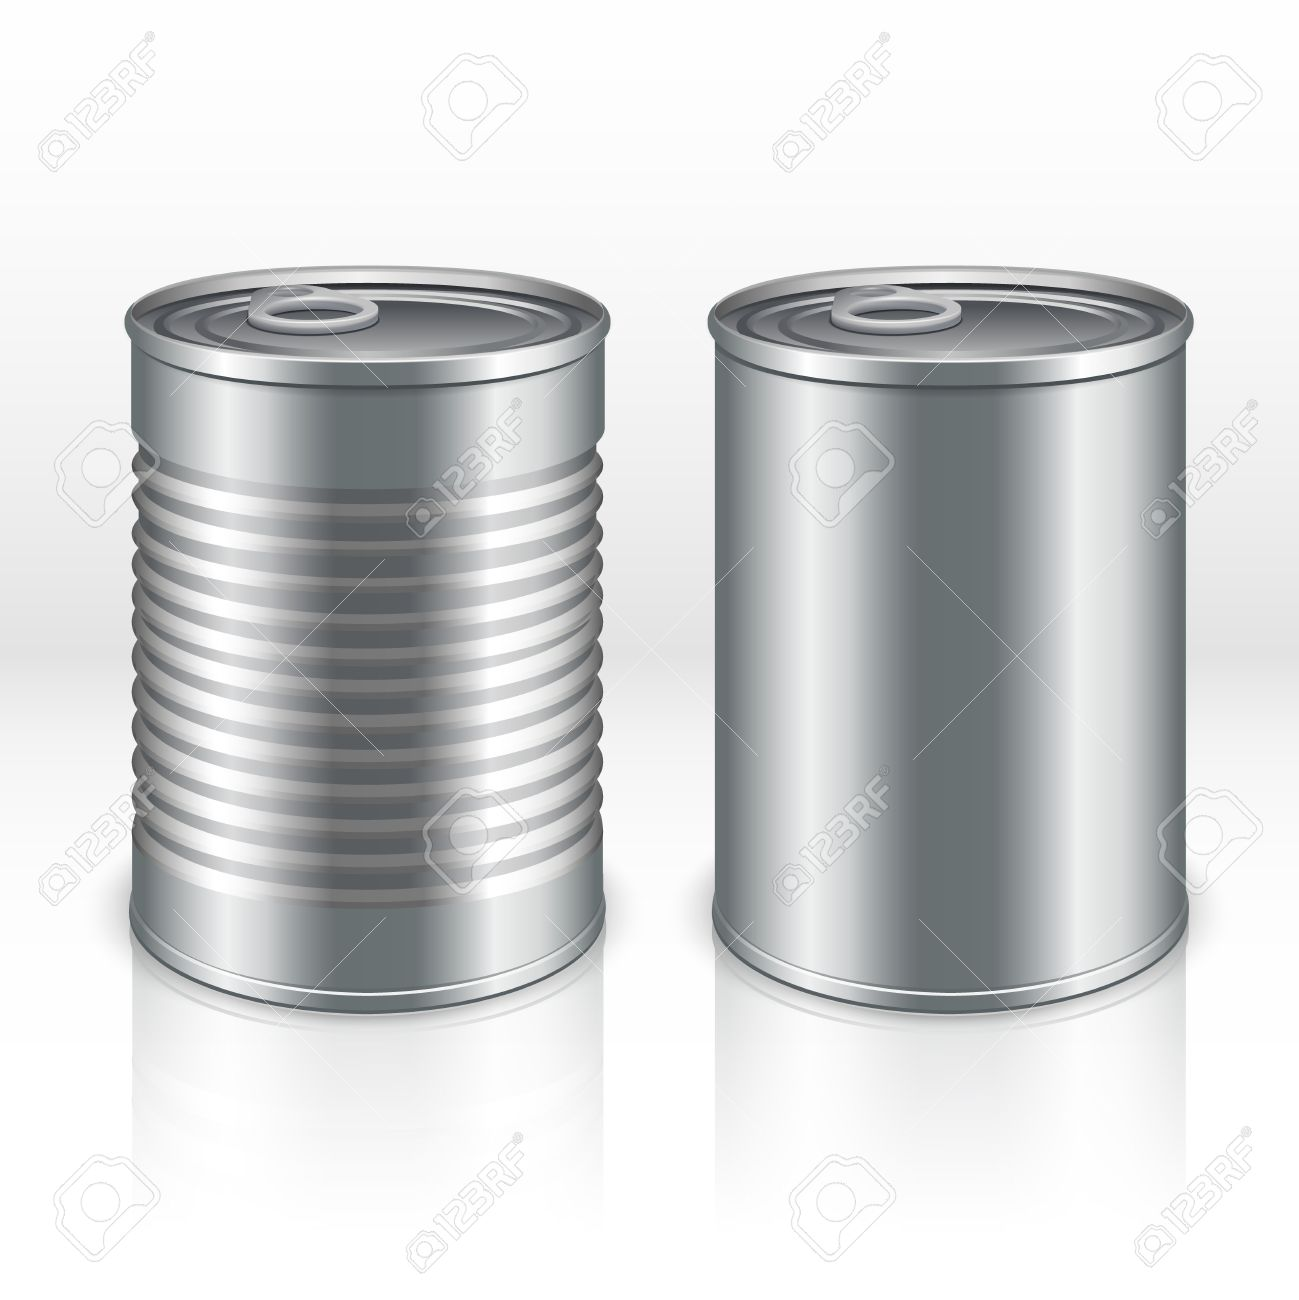 Transparent Aluminium Blank Metal Products Container Tin Cans Isolated On Transparent